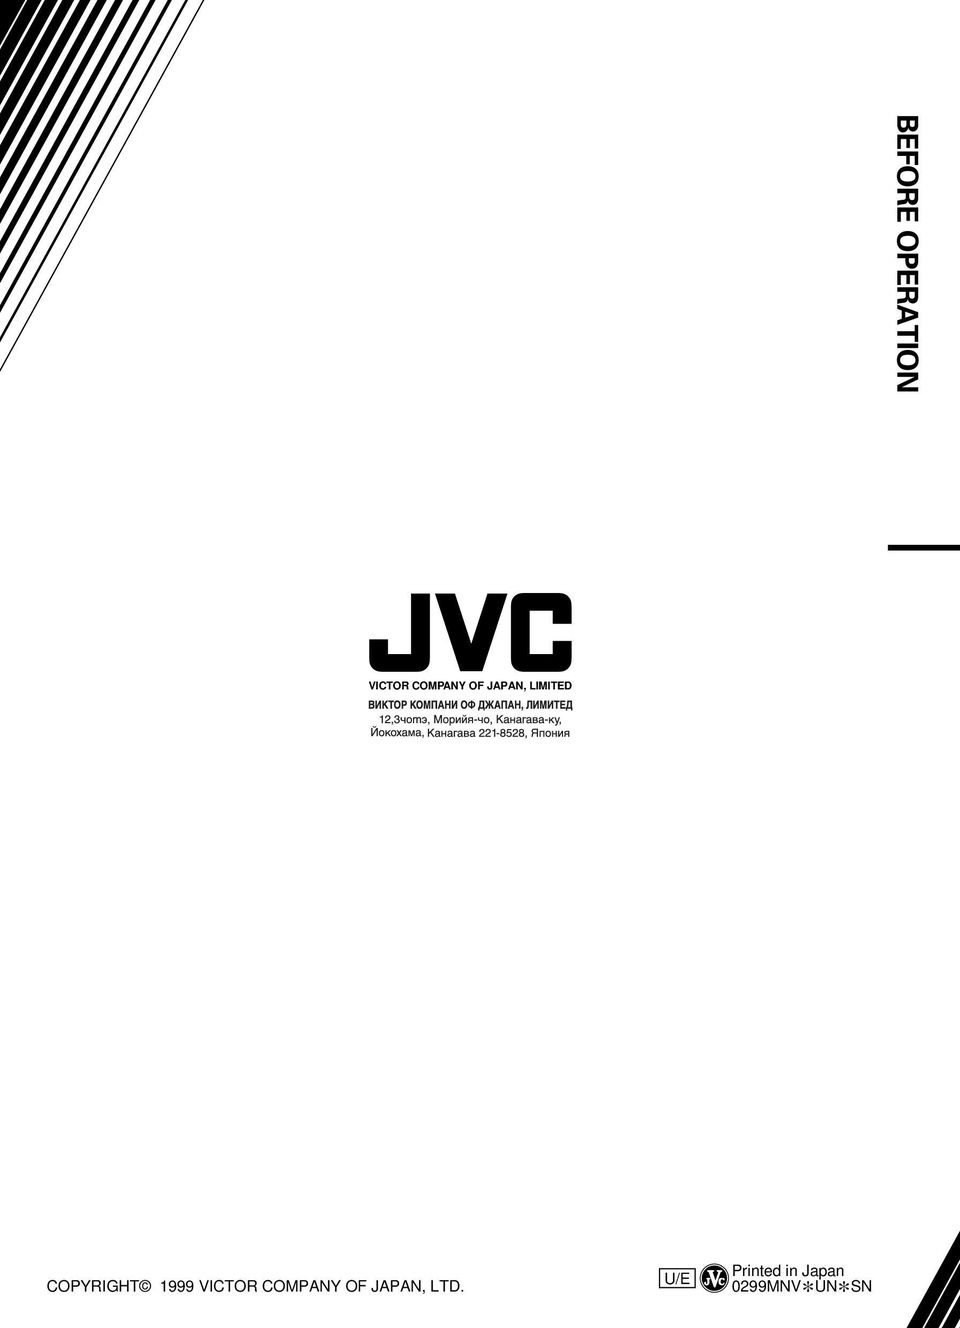 VICTOR COMPANY OF JAPAN, LTD.